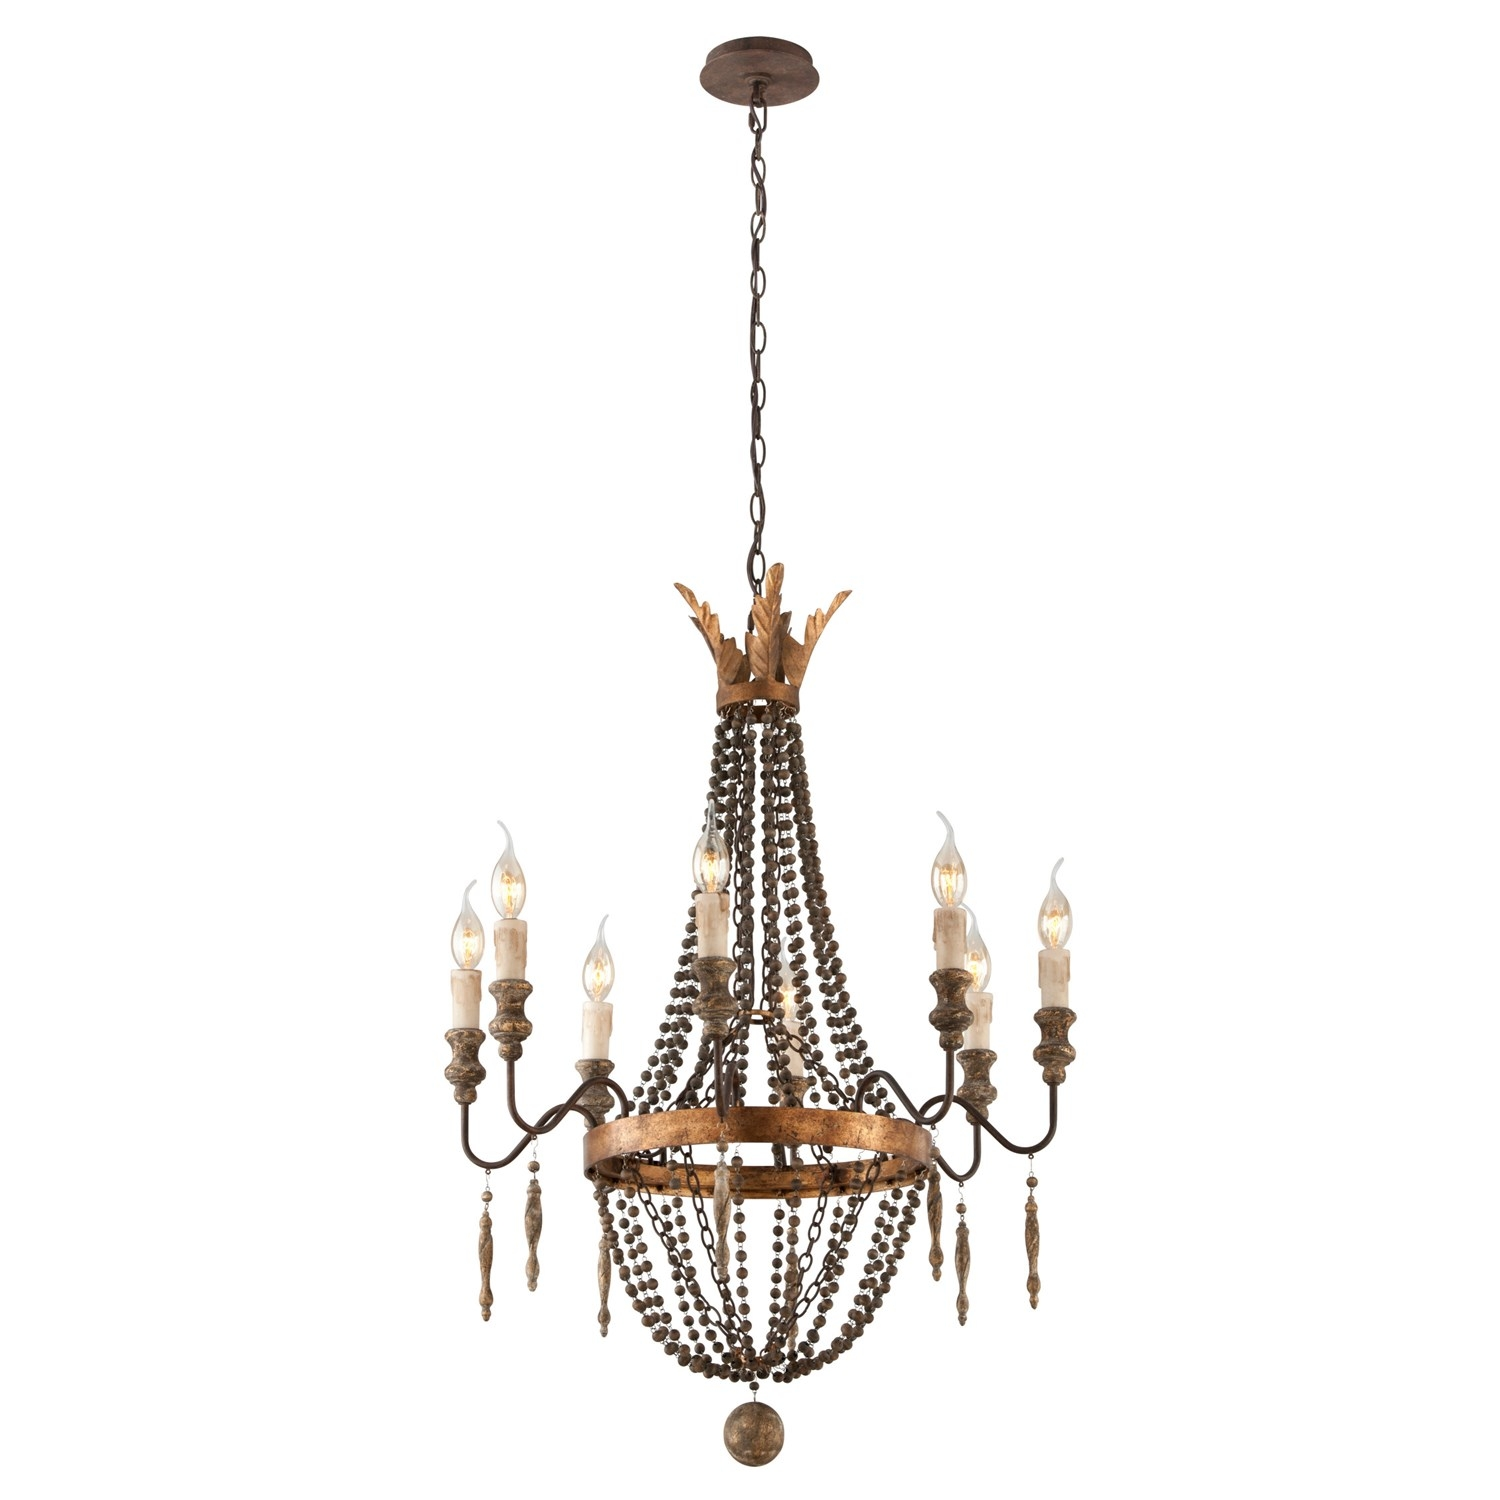 Troy Lighting F3535 Delacroix 8 Light Small Chandelier In French Intended For Small Bronze Chandelier (View 13 of 15)